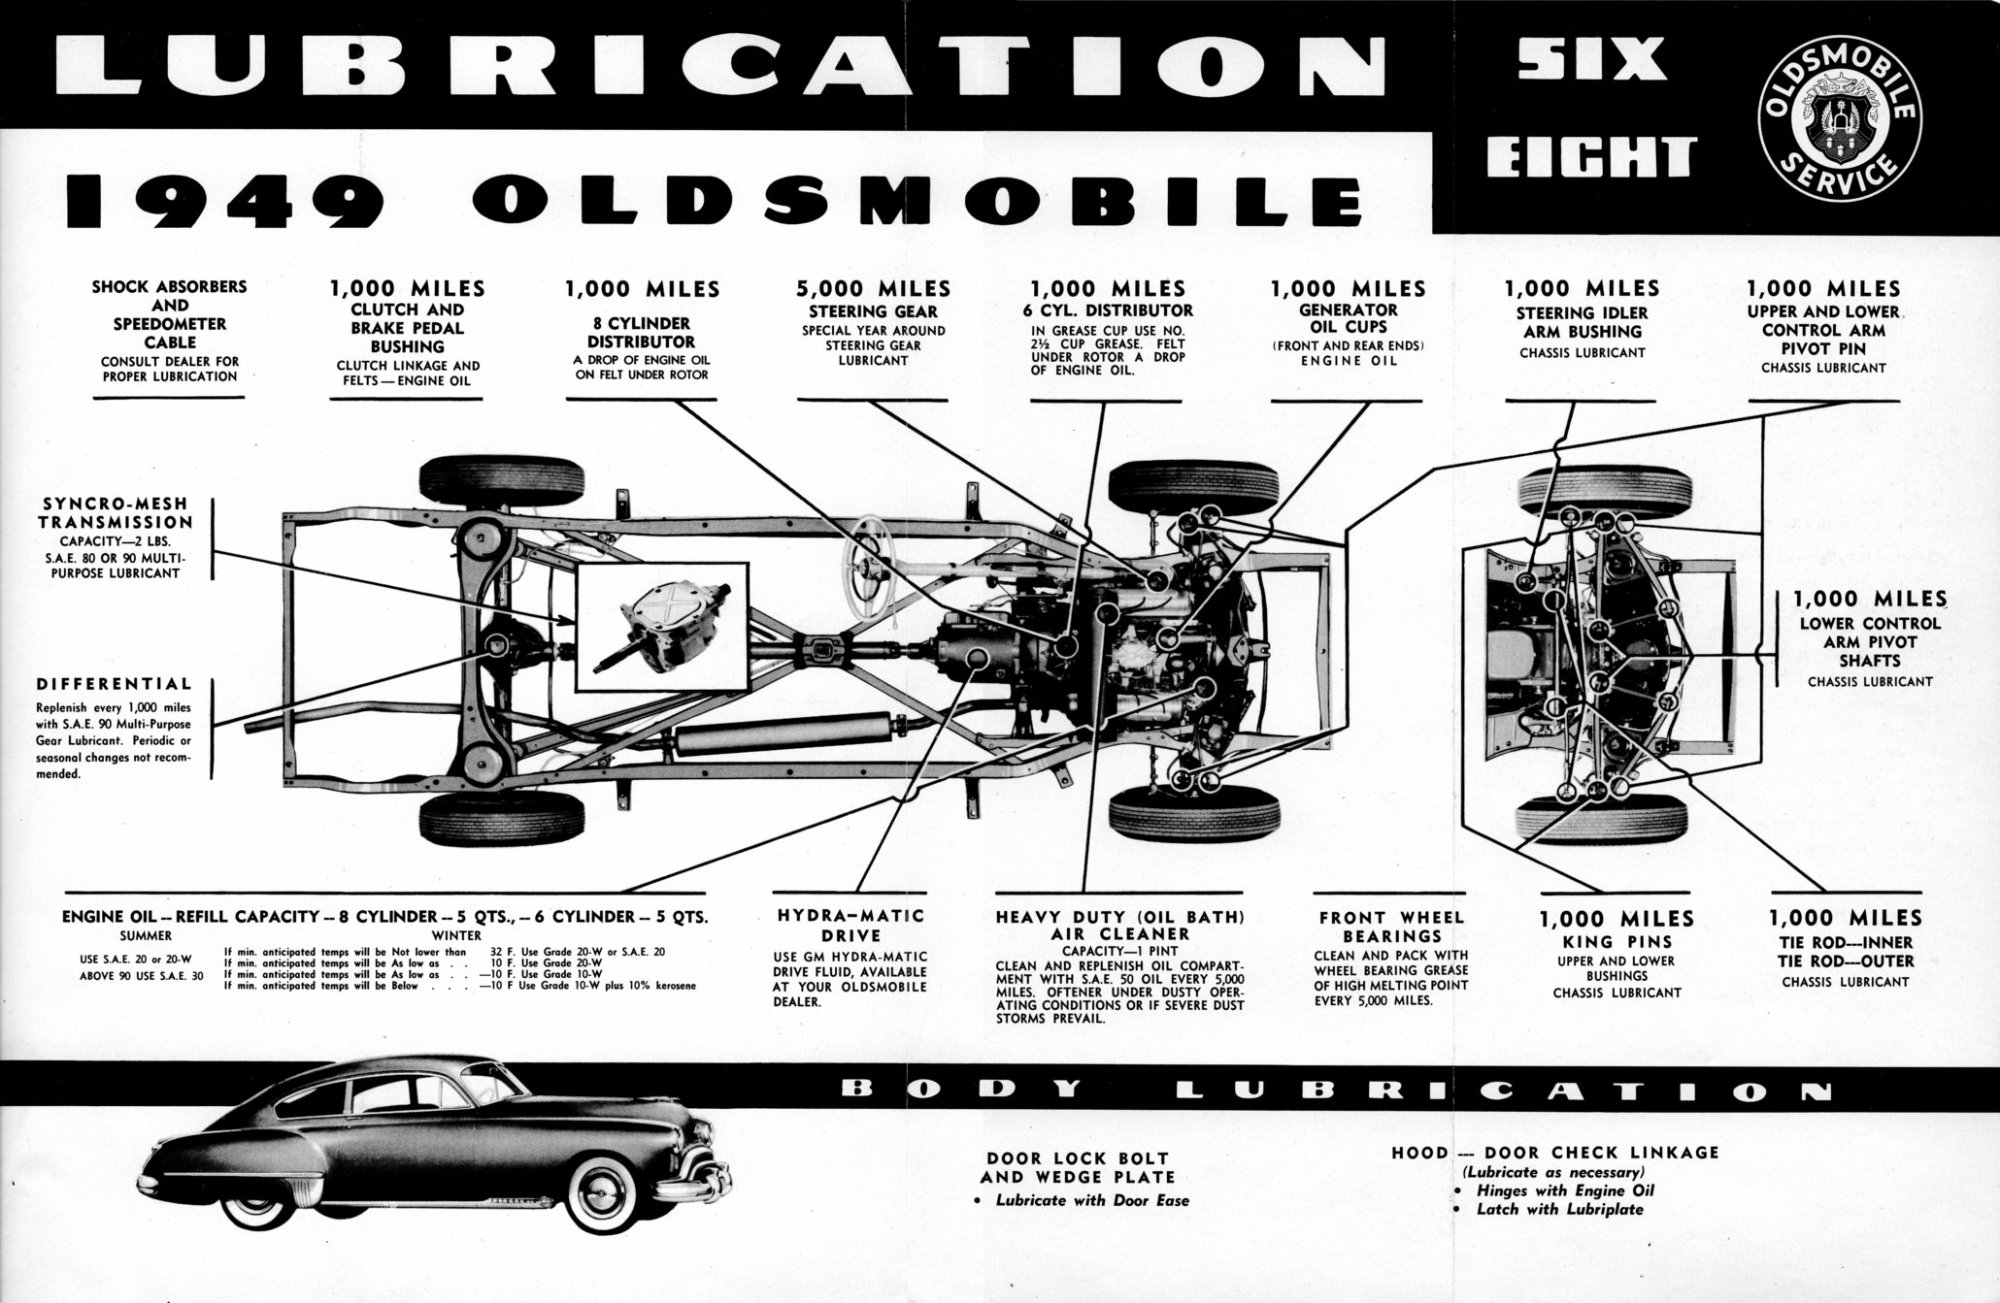 hight resolution of 8 1949 oldsmobile lubrication chart